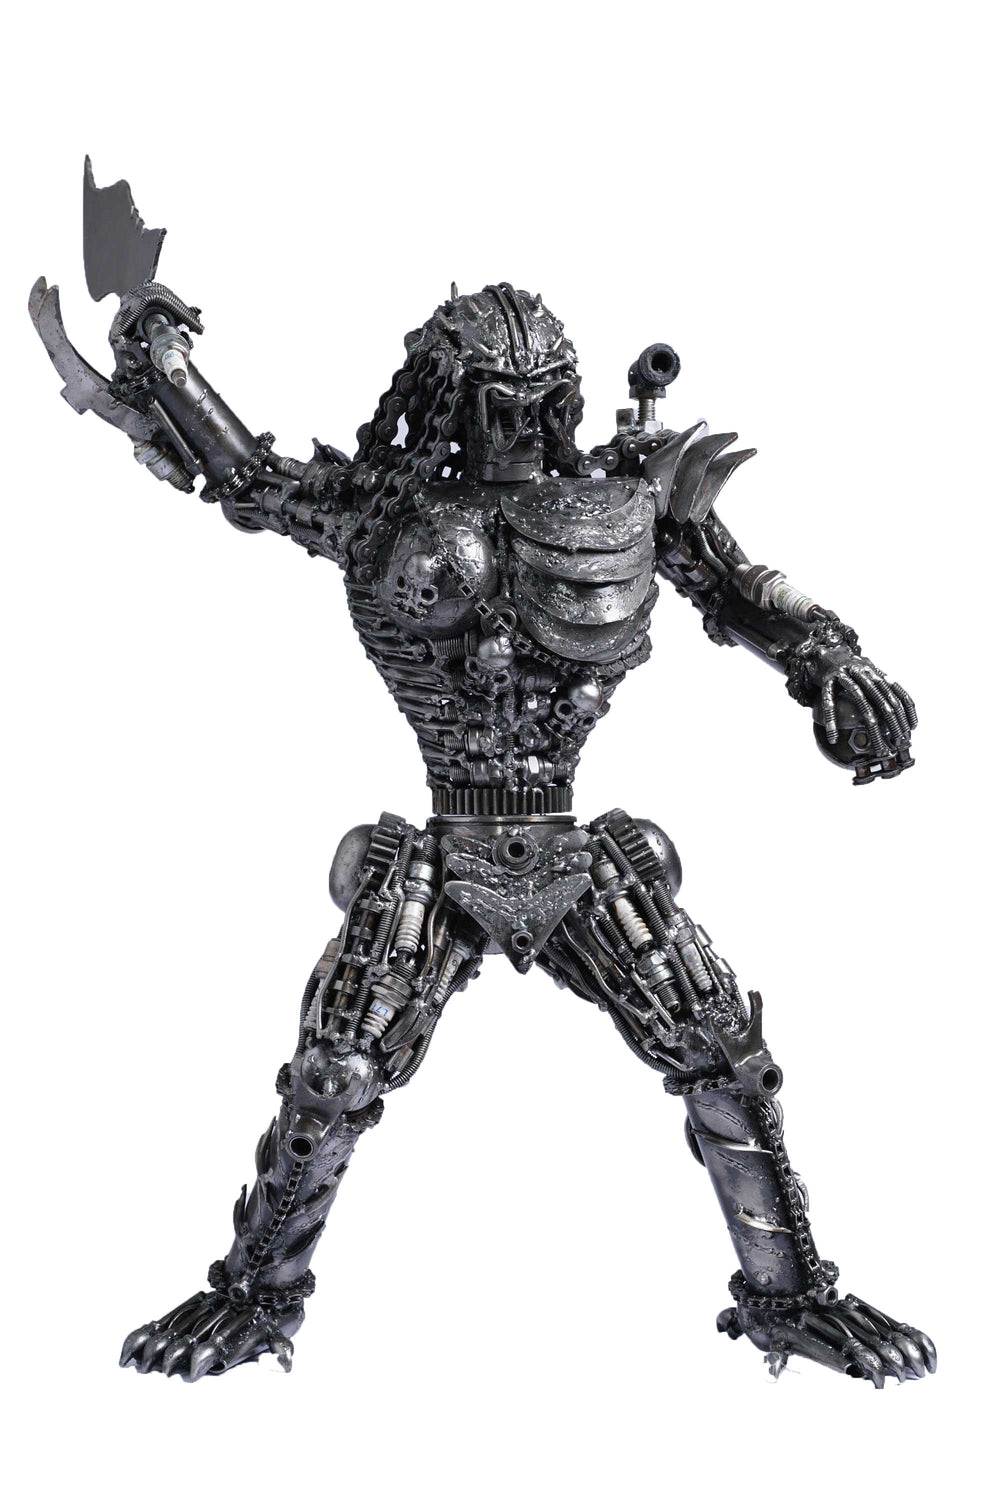 Predator metal action figure hand-crafted from junk auto parts